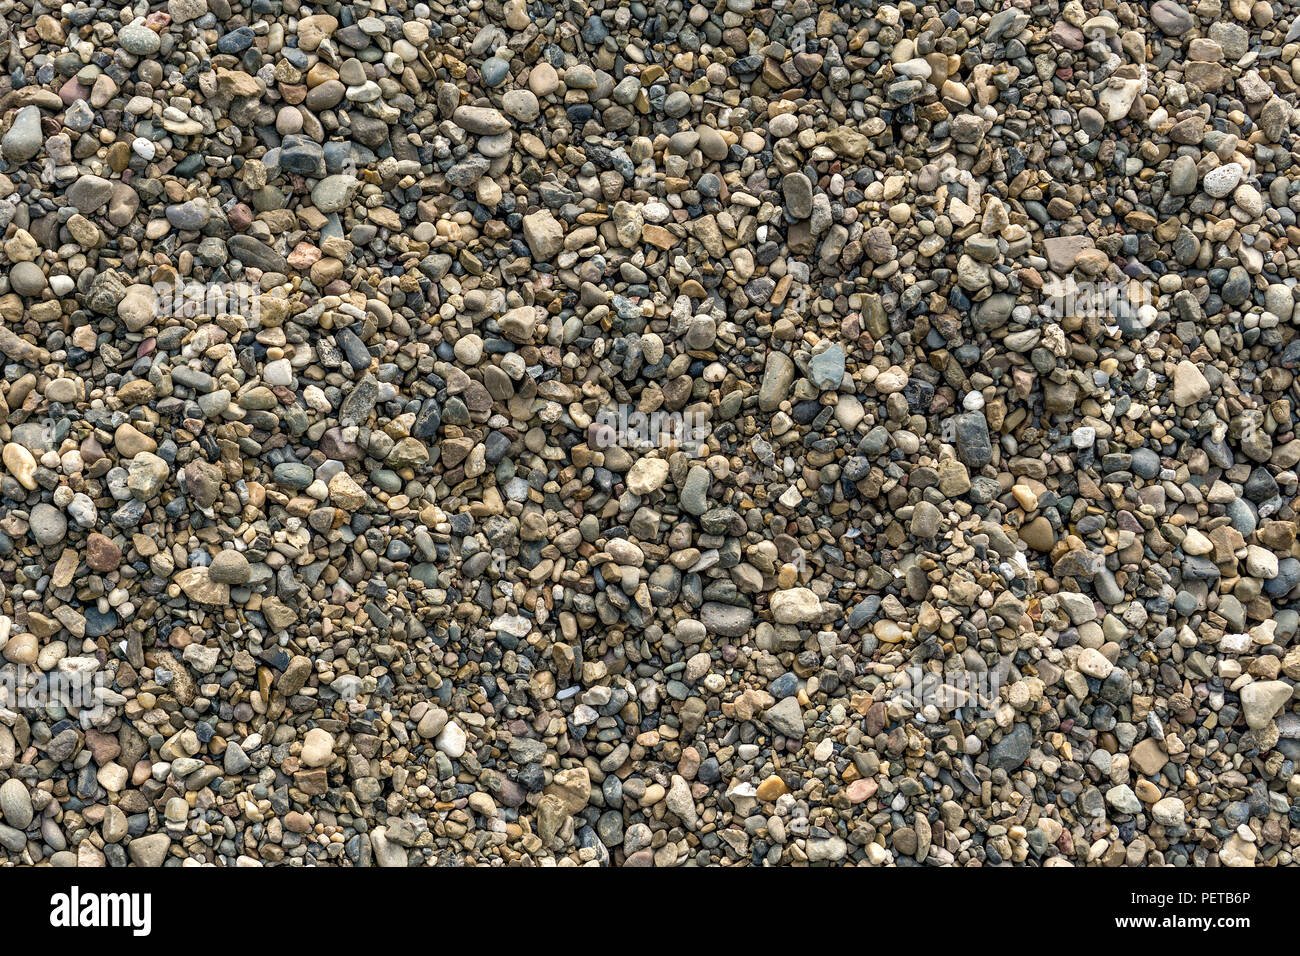 Abstract natural background with dry round pebble stone uneven surface. Gravel texture. - Stock Image